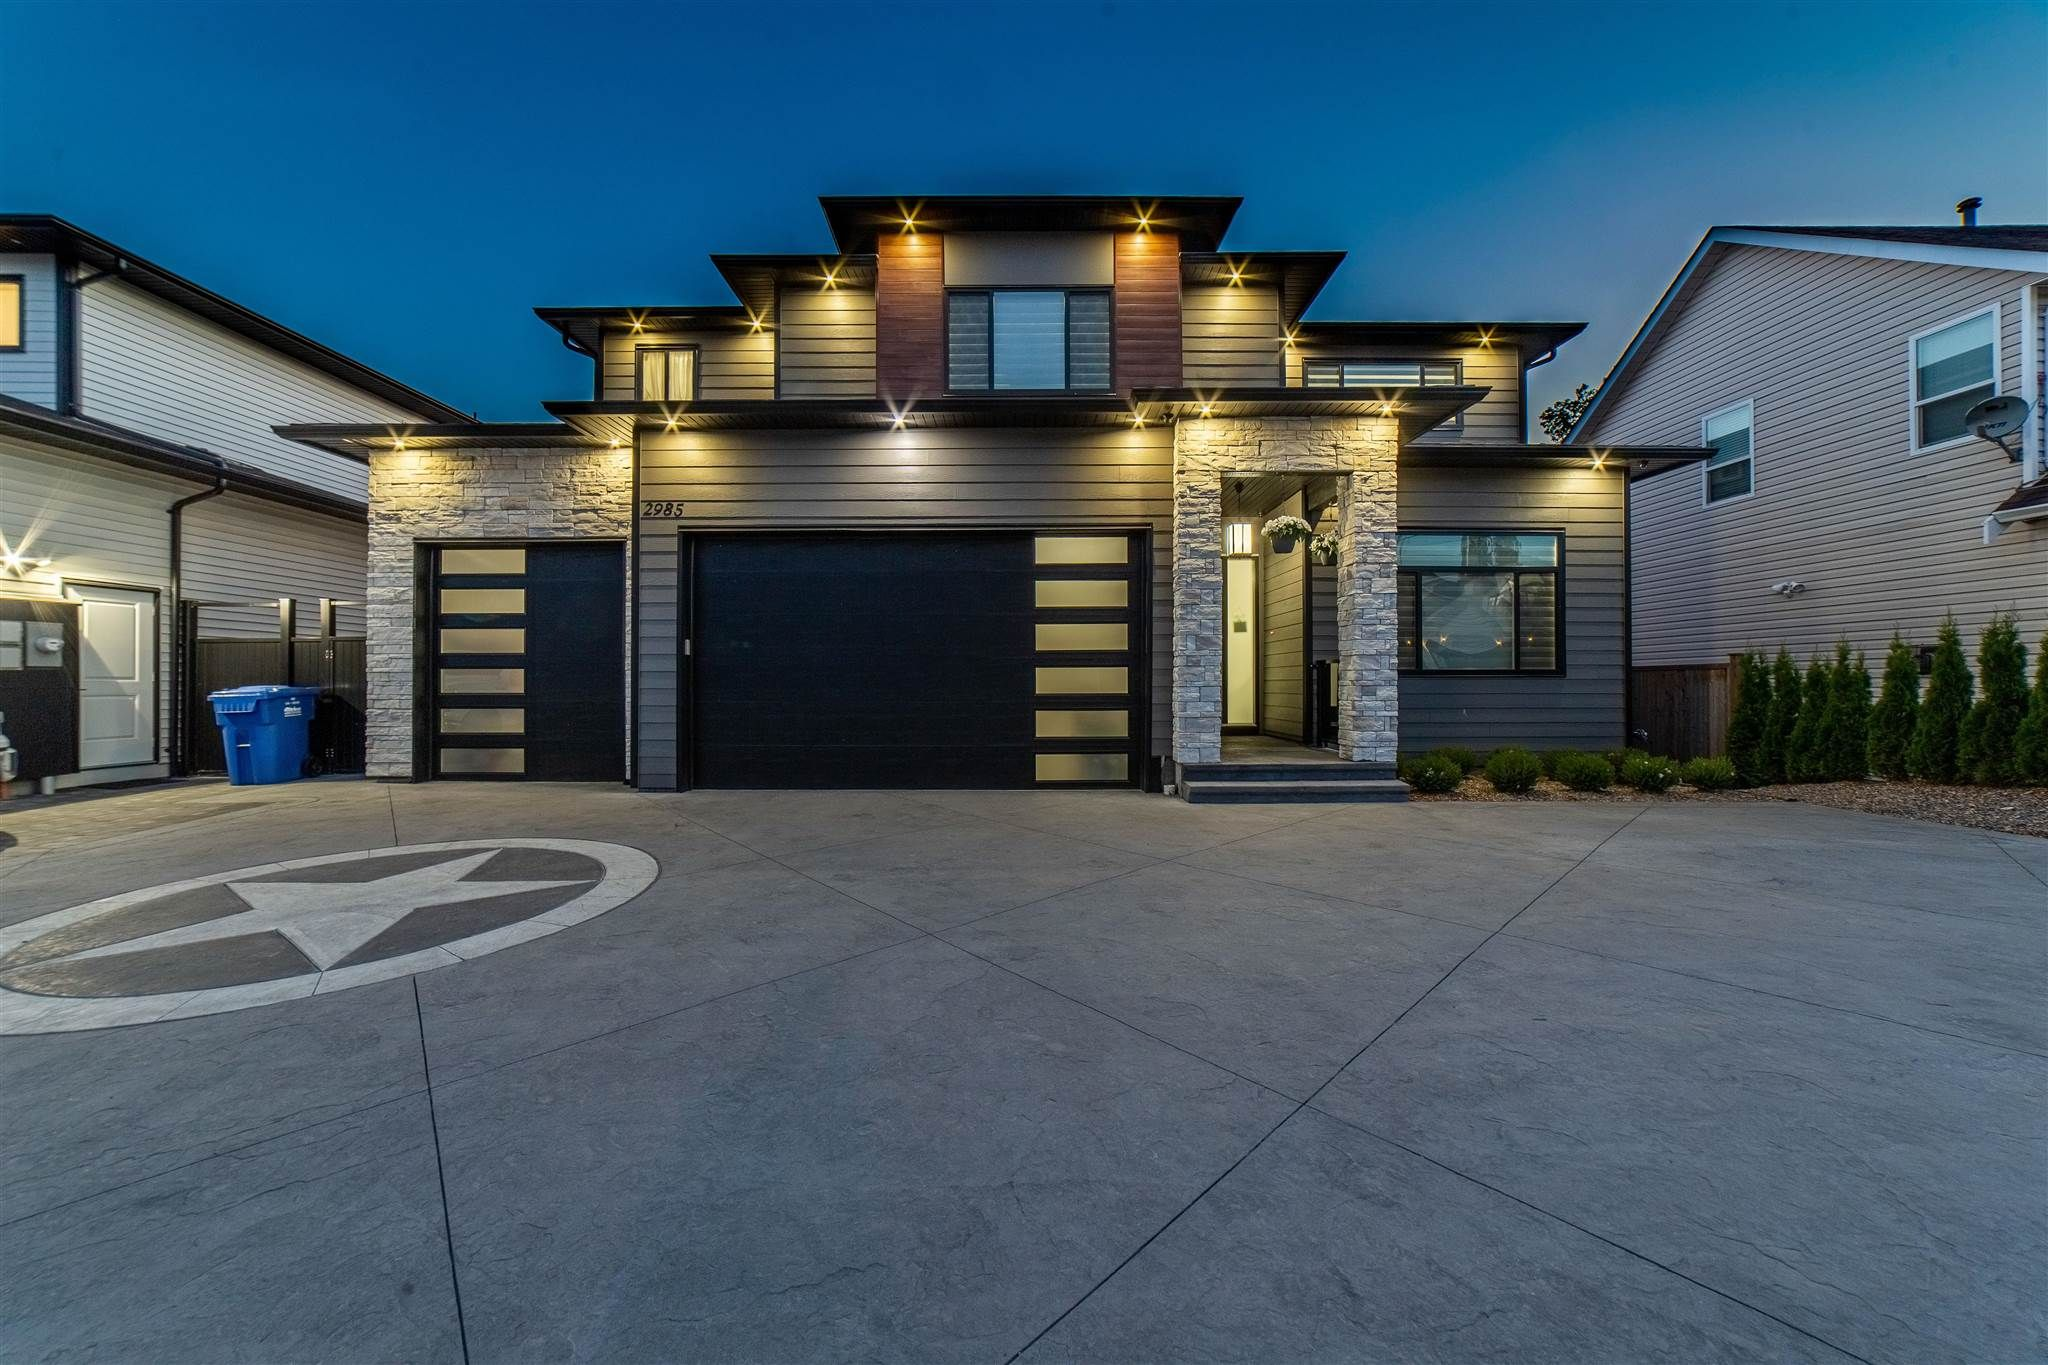 Main Photo: 2985 TOWNLINE Road in Abbotsford: Abbotsford West House for sale : MLS®# R2595923